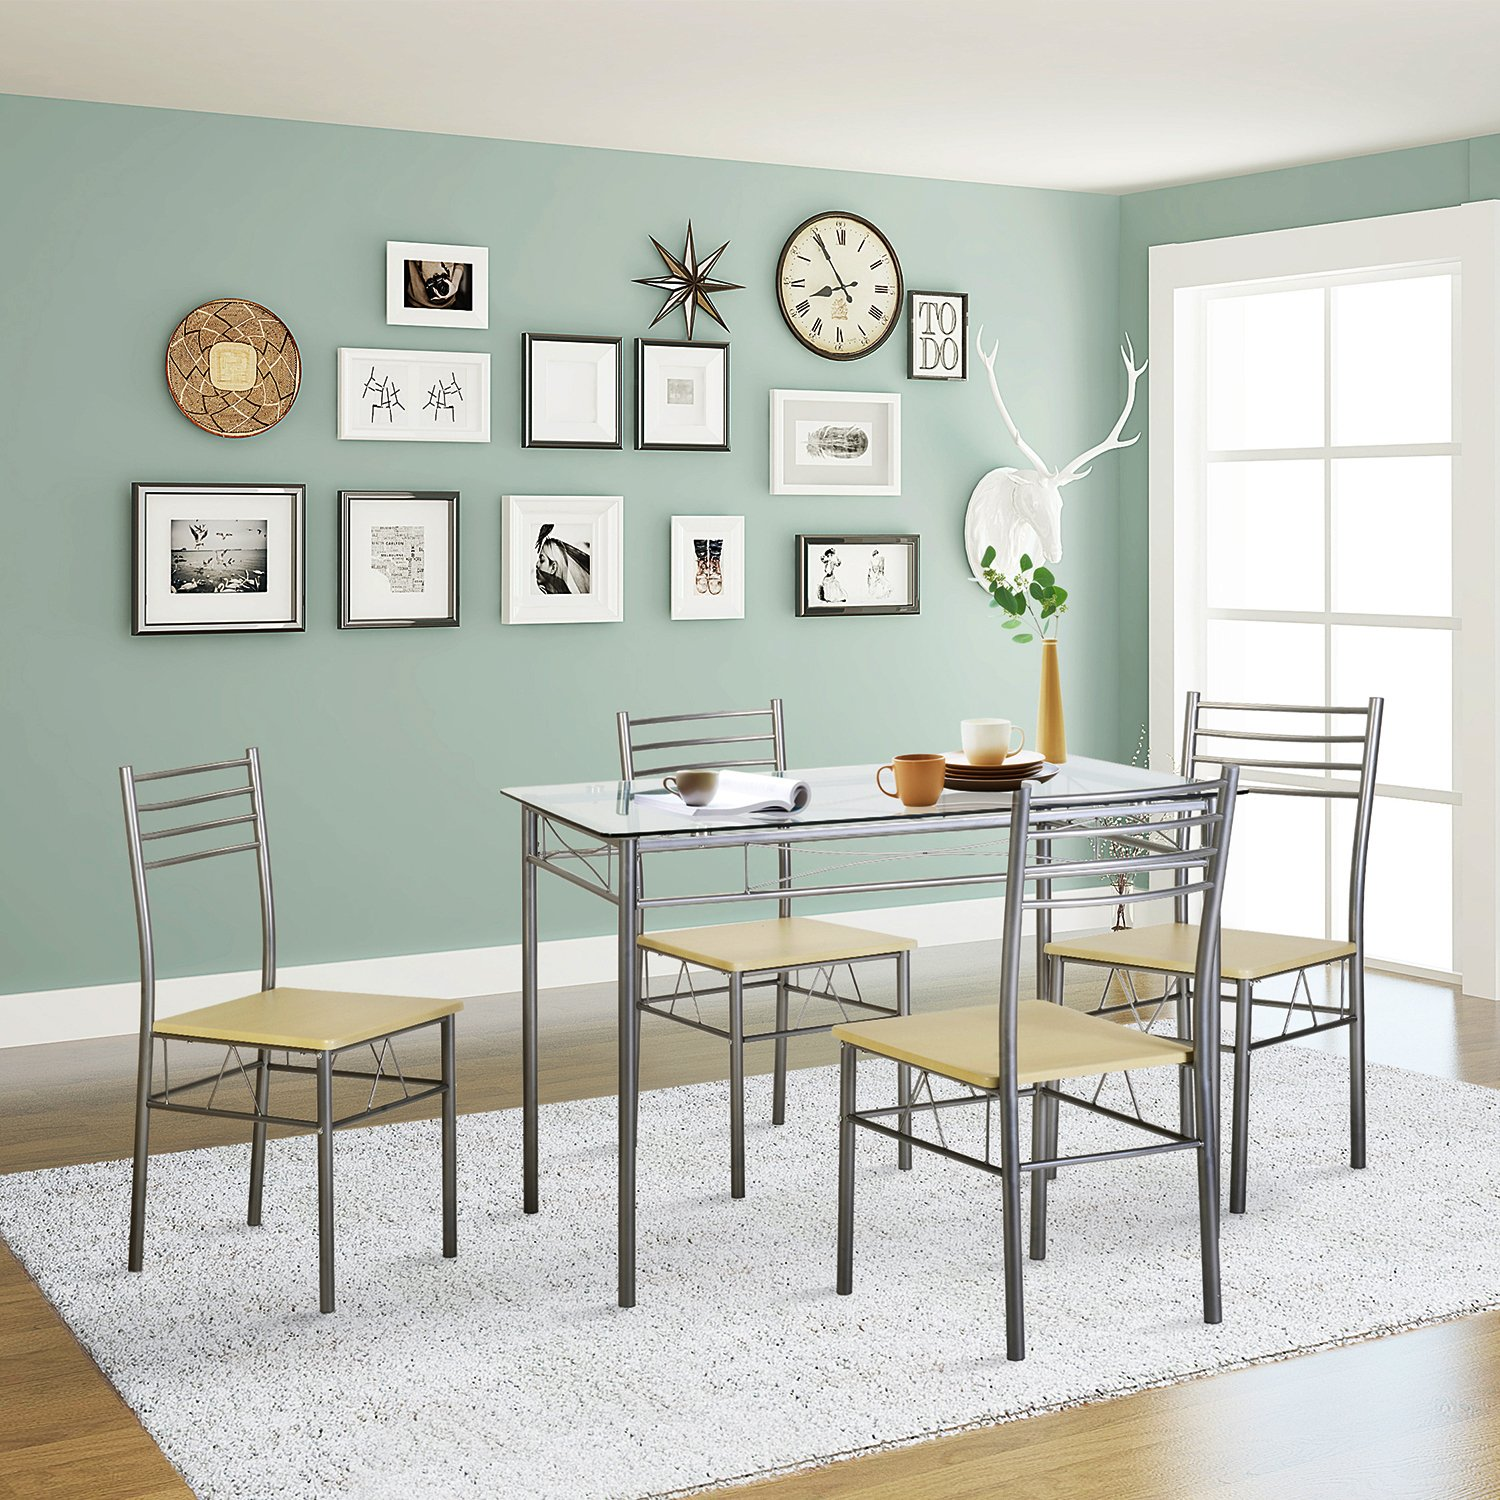 Amazon.com - VECELO Dining Table with 4 Chairs - Silver - Table ...